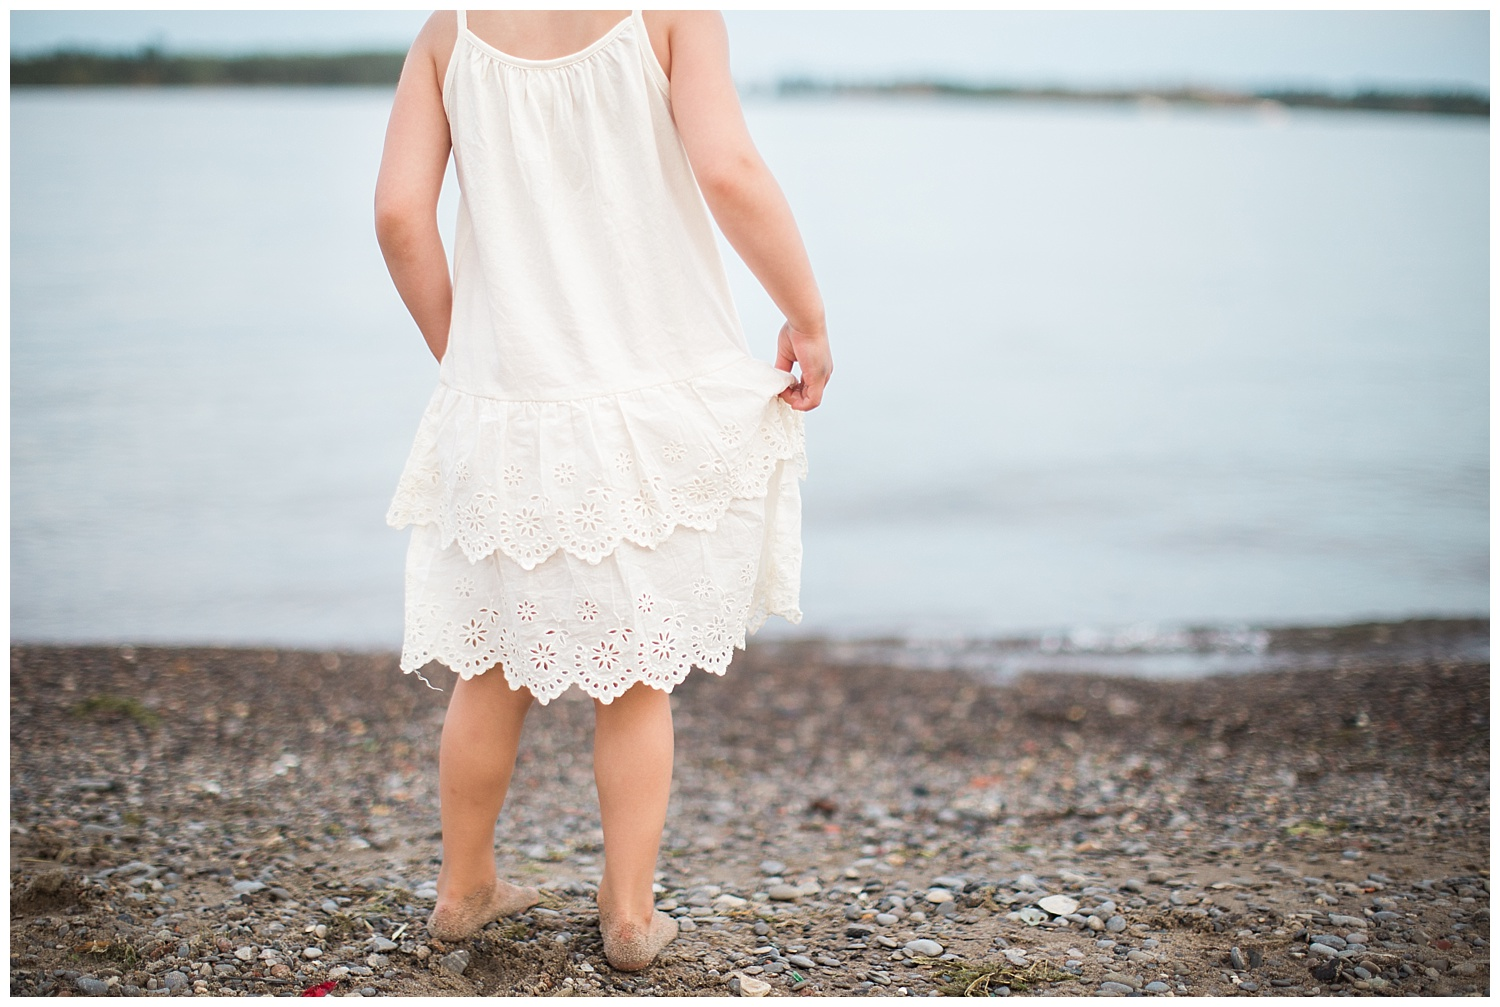 Cherry Beach Toronto Photo Girl Dress